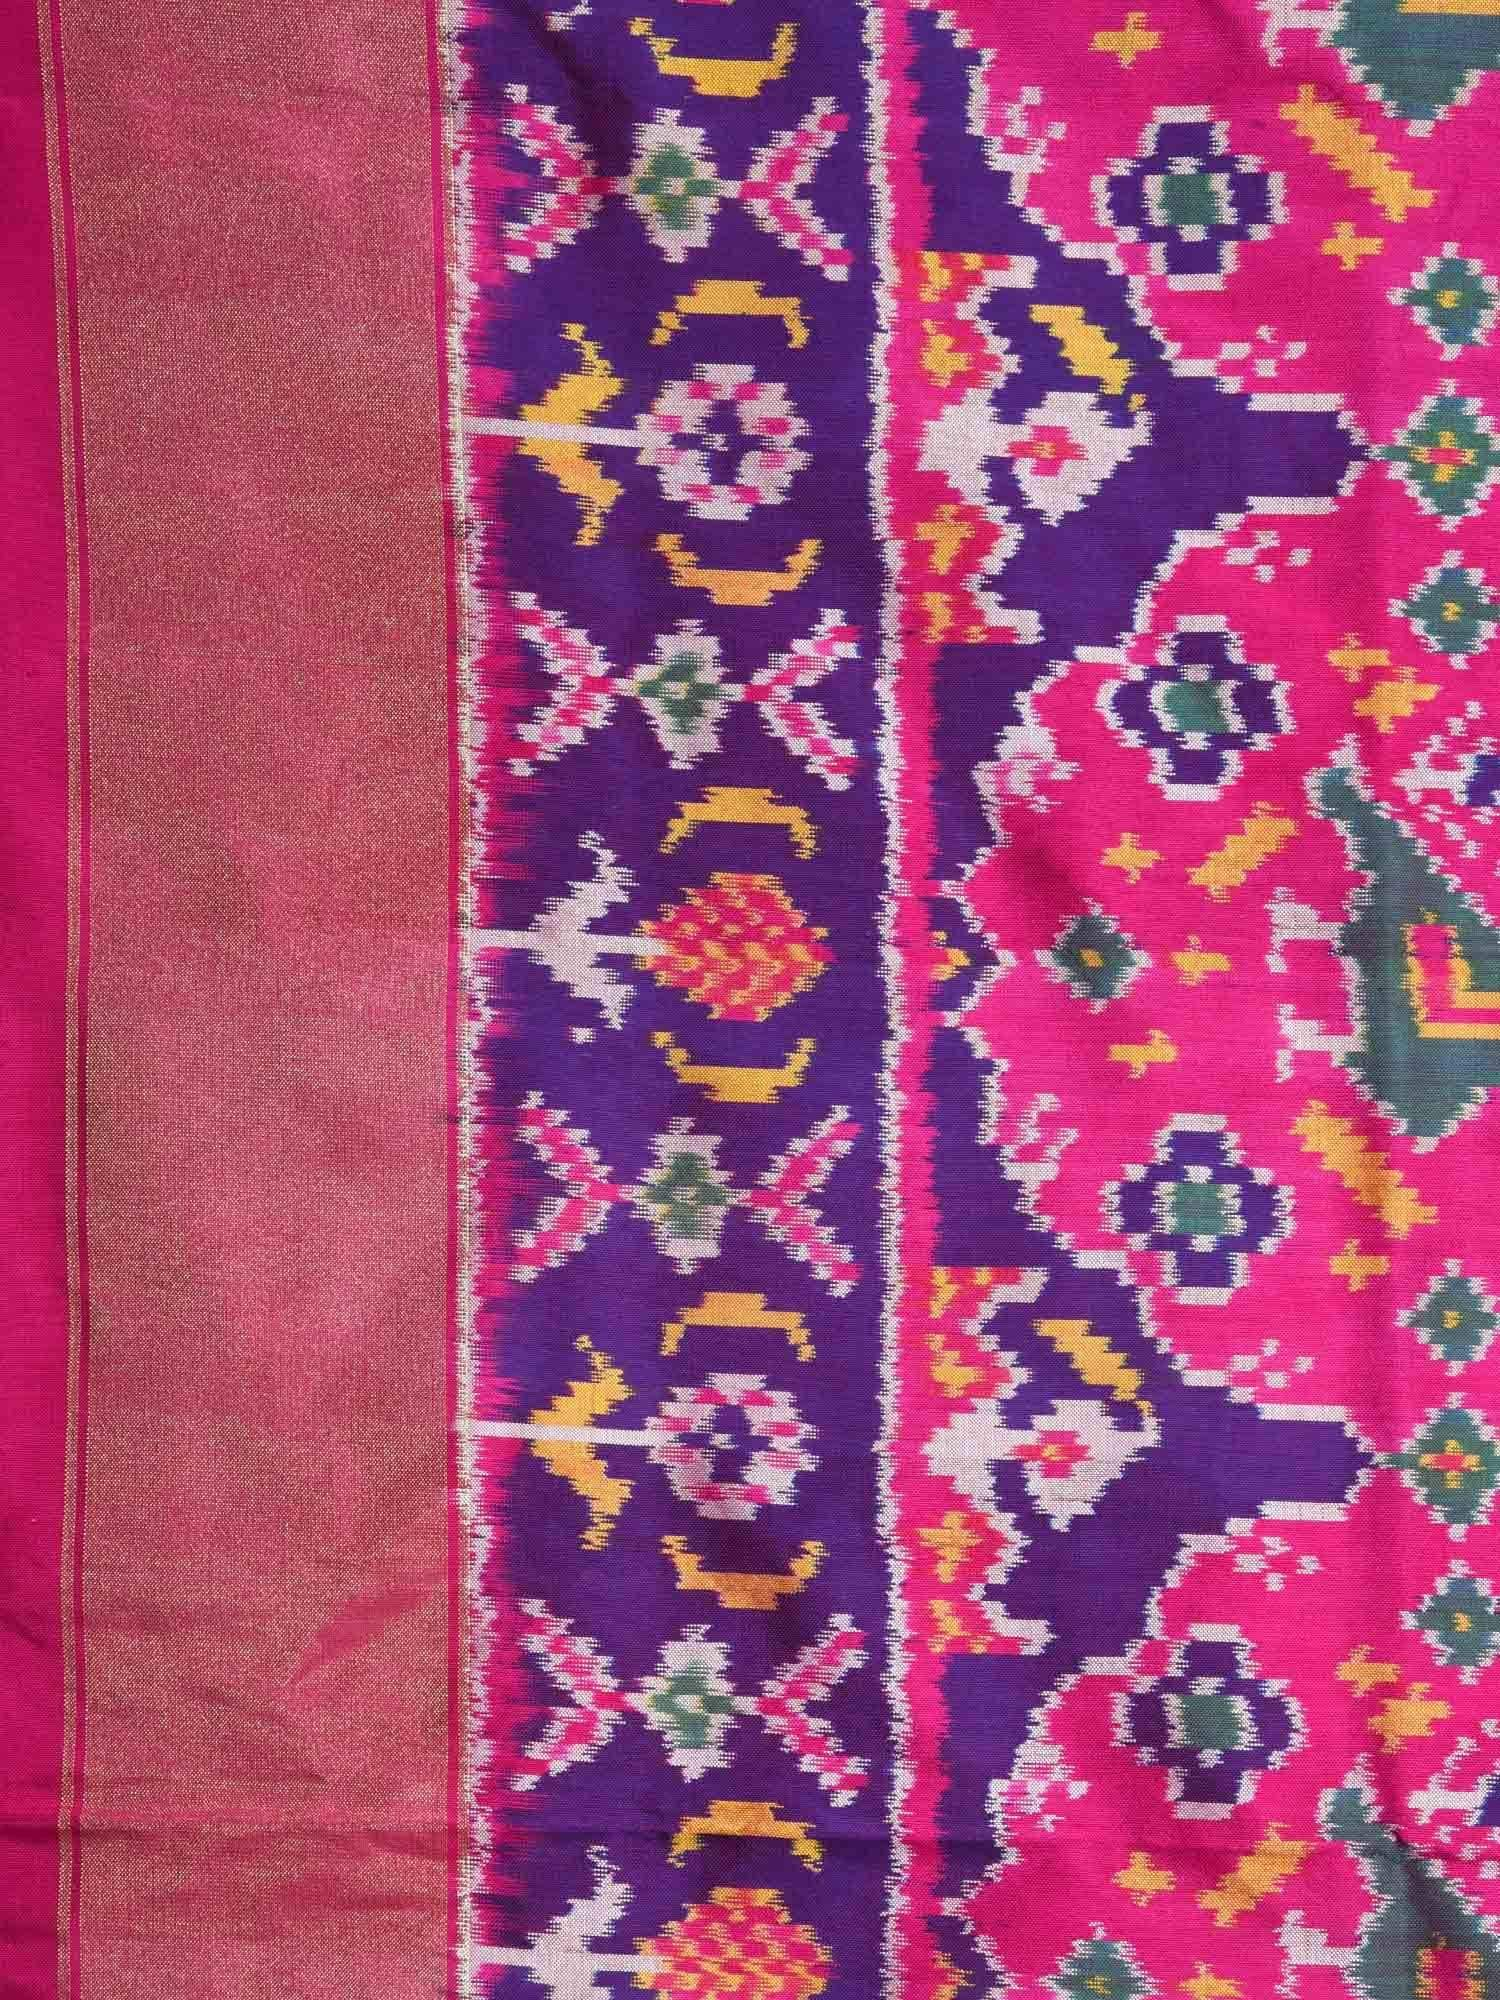 Pink and Purple Pochampally Ikat Silk Handloom Saree with All Over Bird and Elephant Design i0501